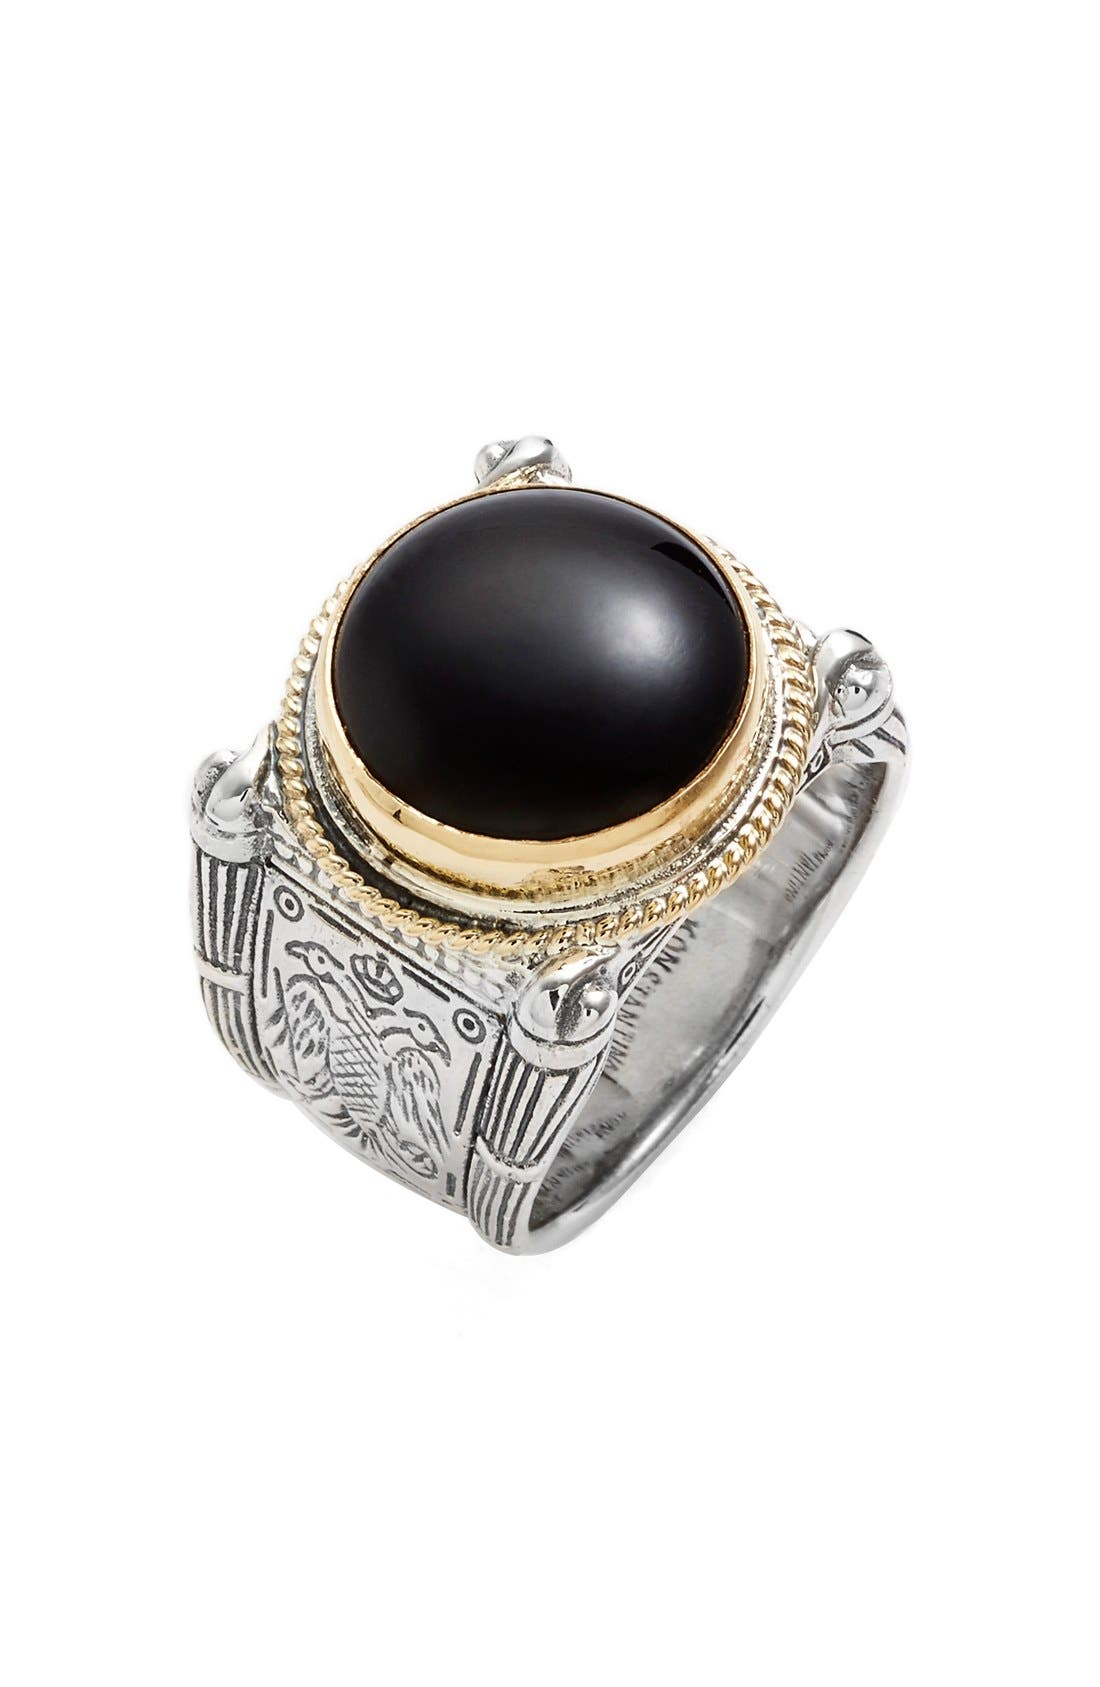 'Minos' Etched Black Onyx Ring,                             Main thumbnail 1, color,                             040